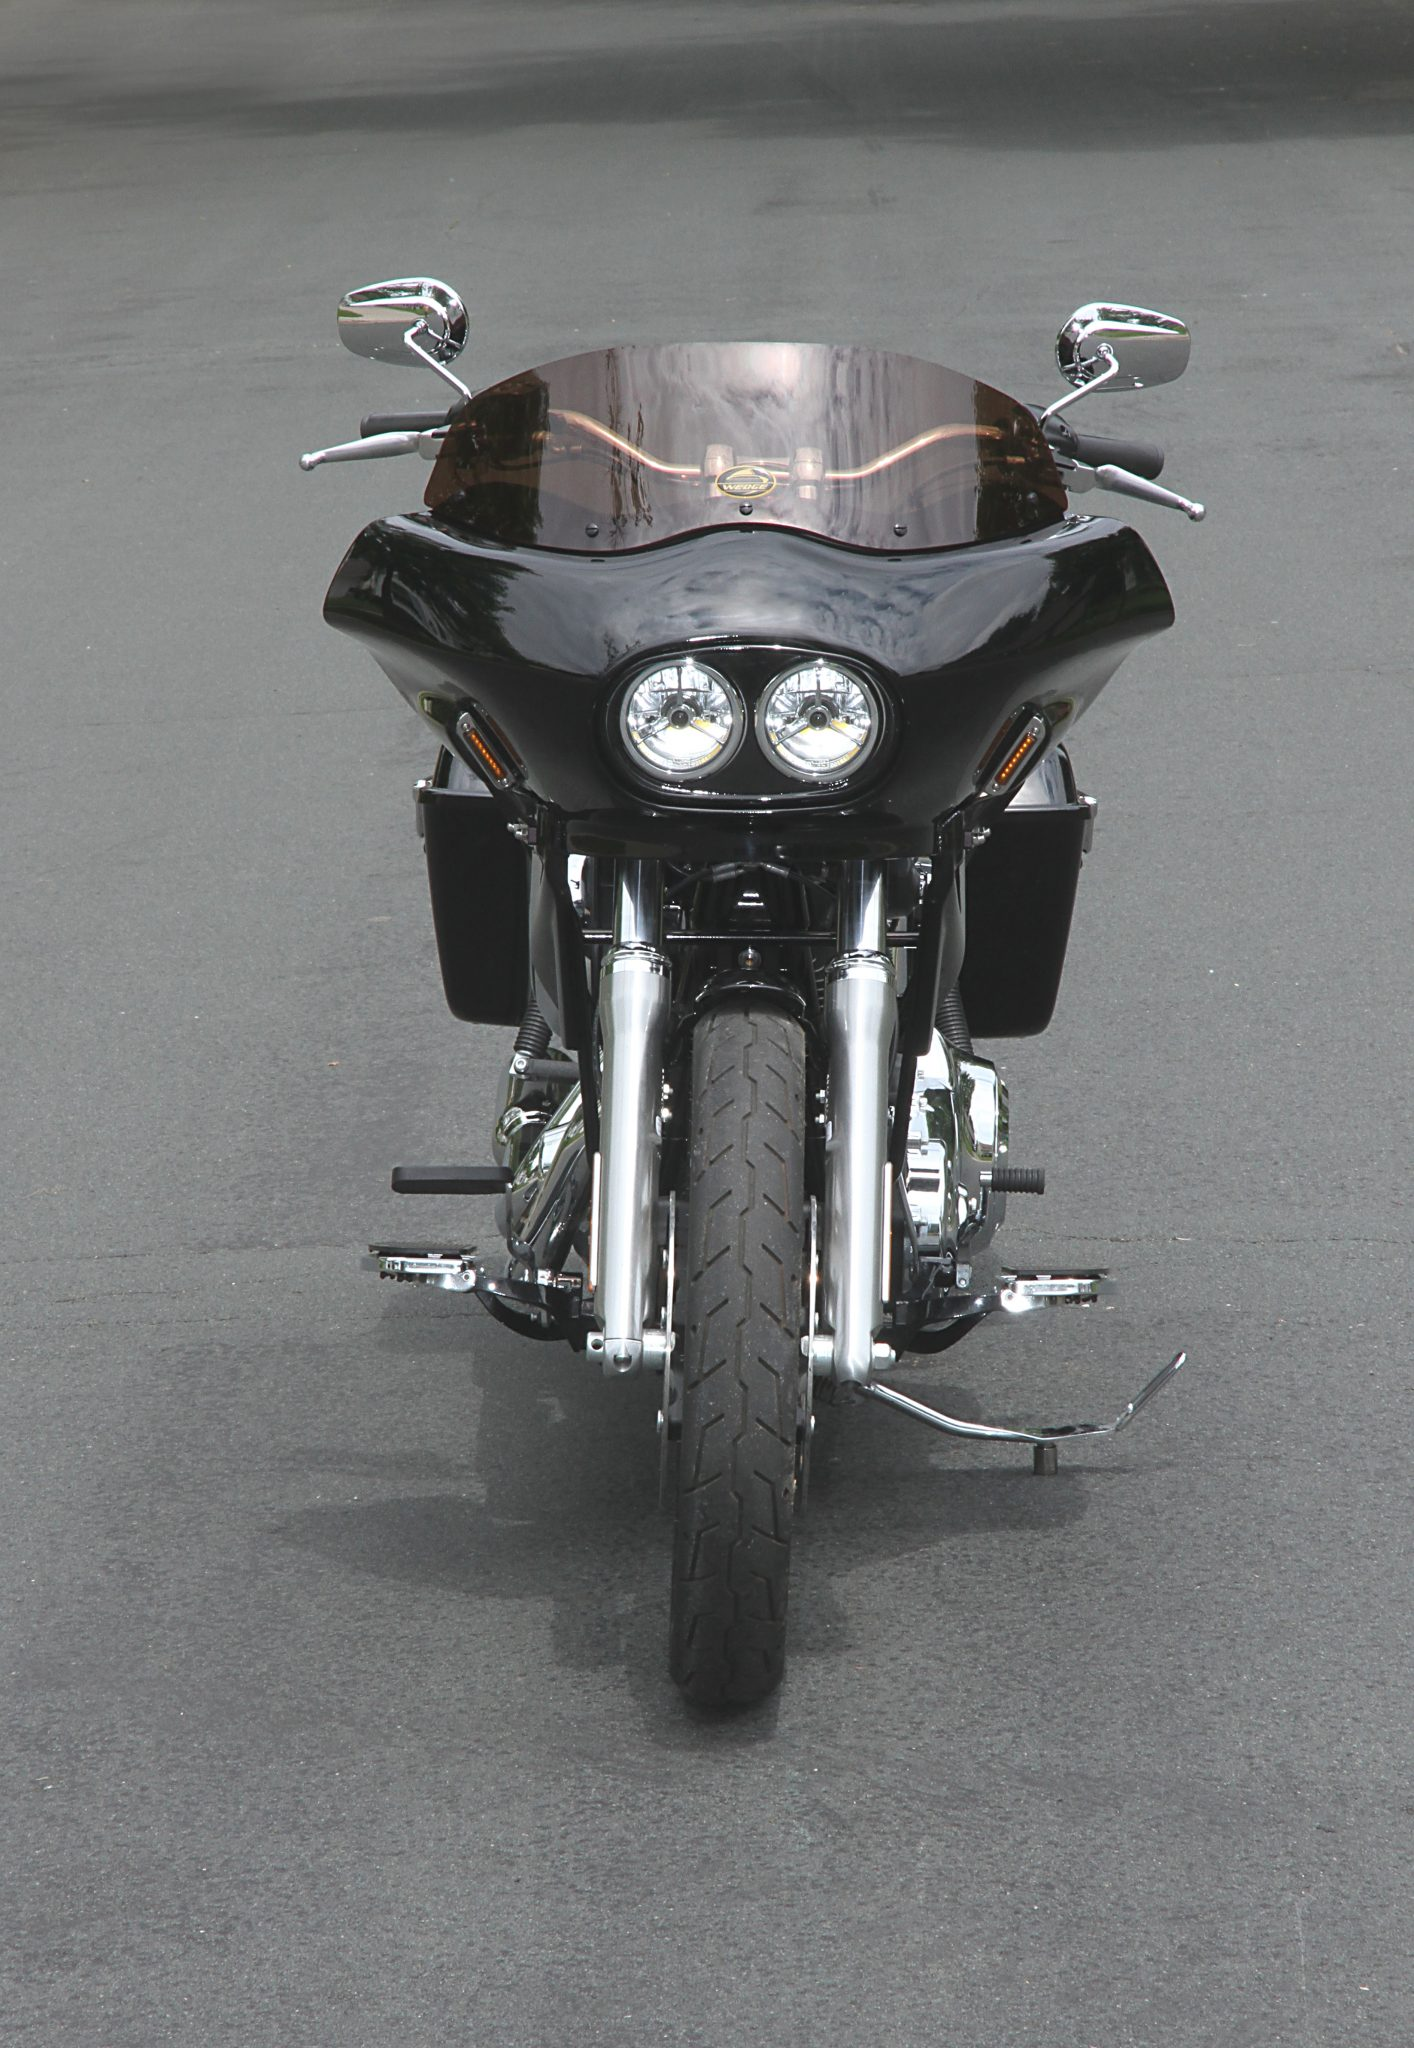 Dyna with dual headlight touring fairing